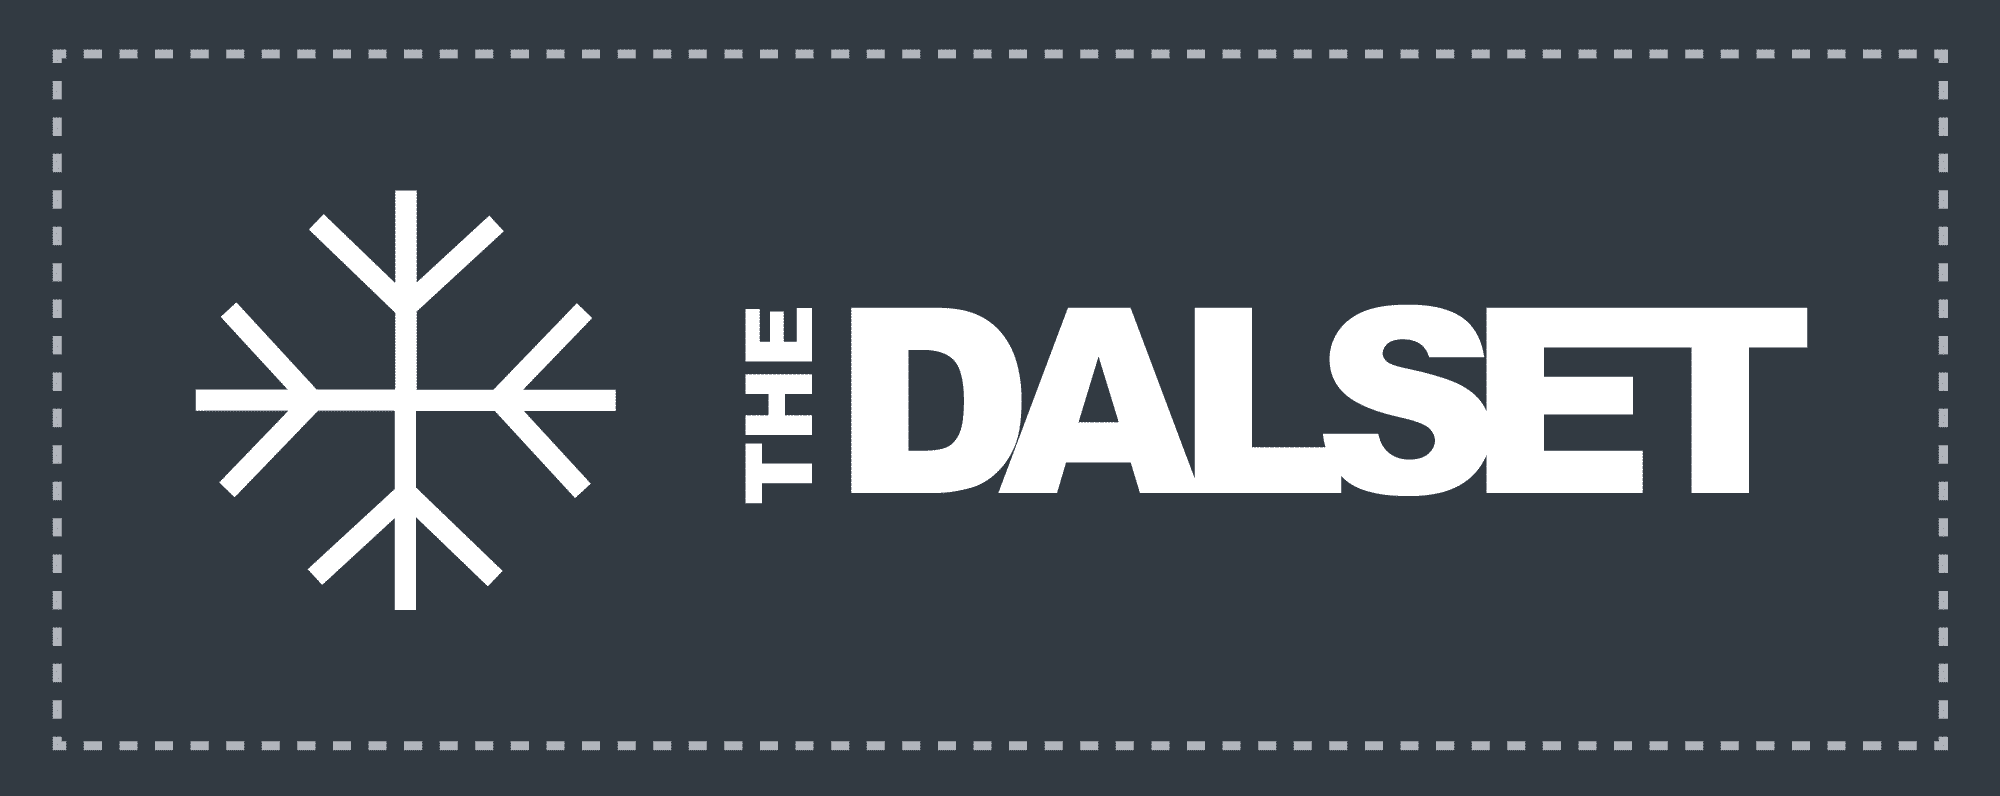 The Dalset